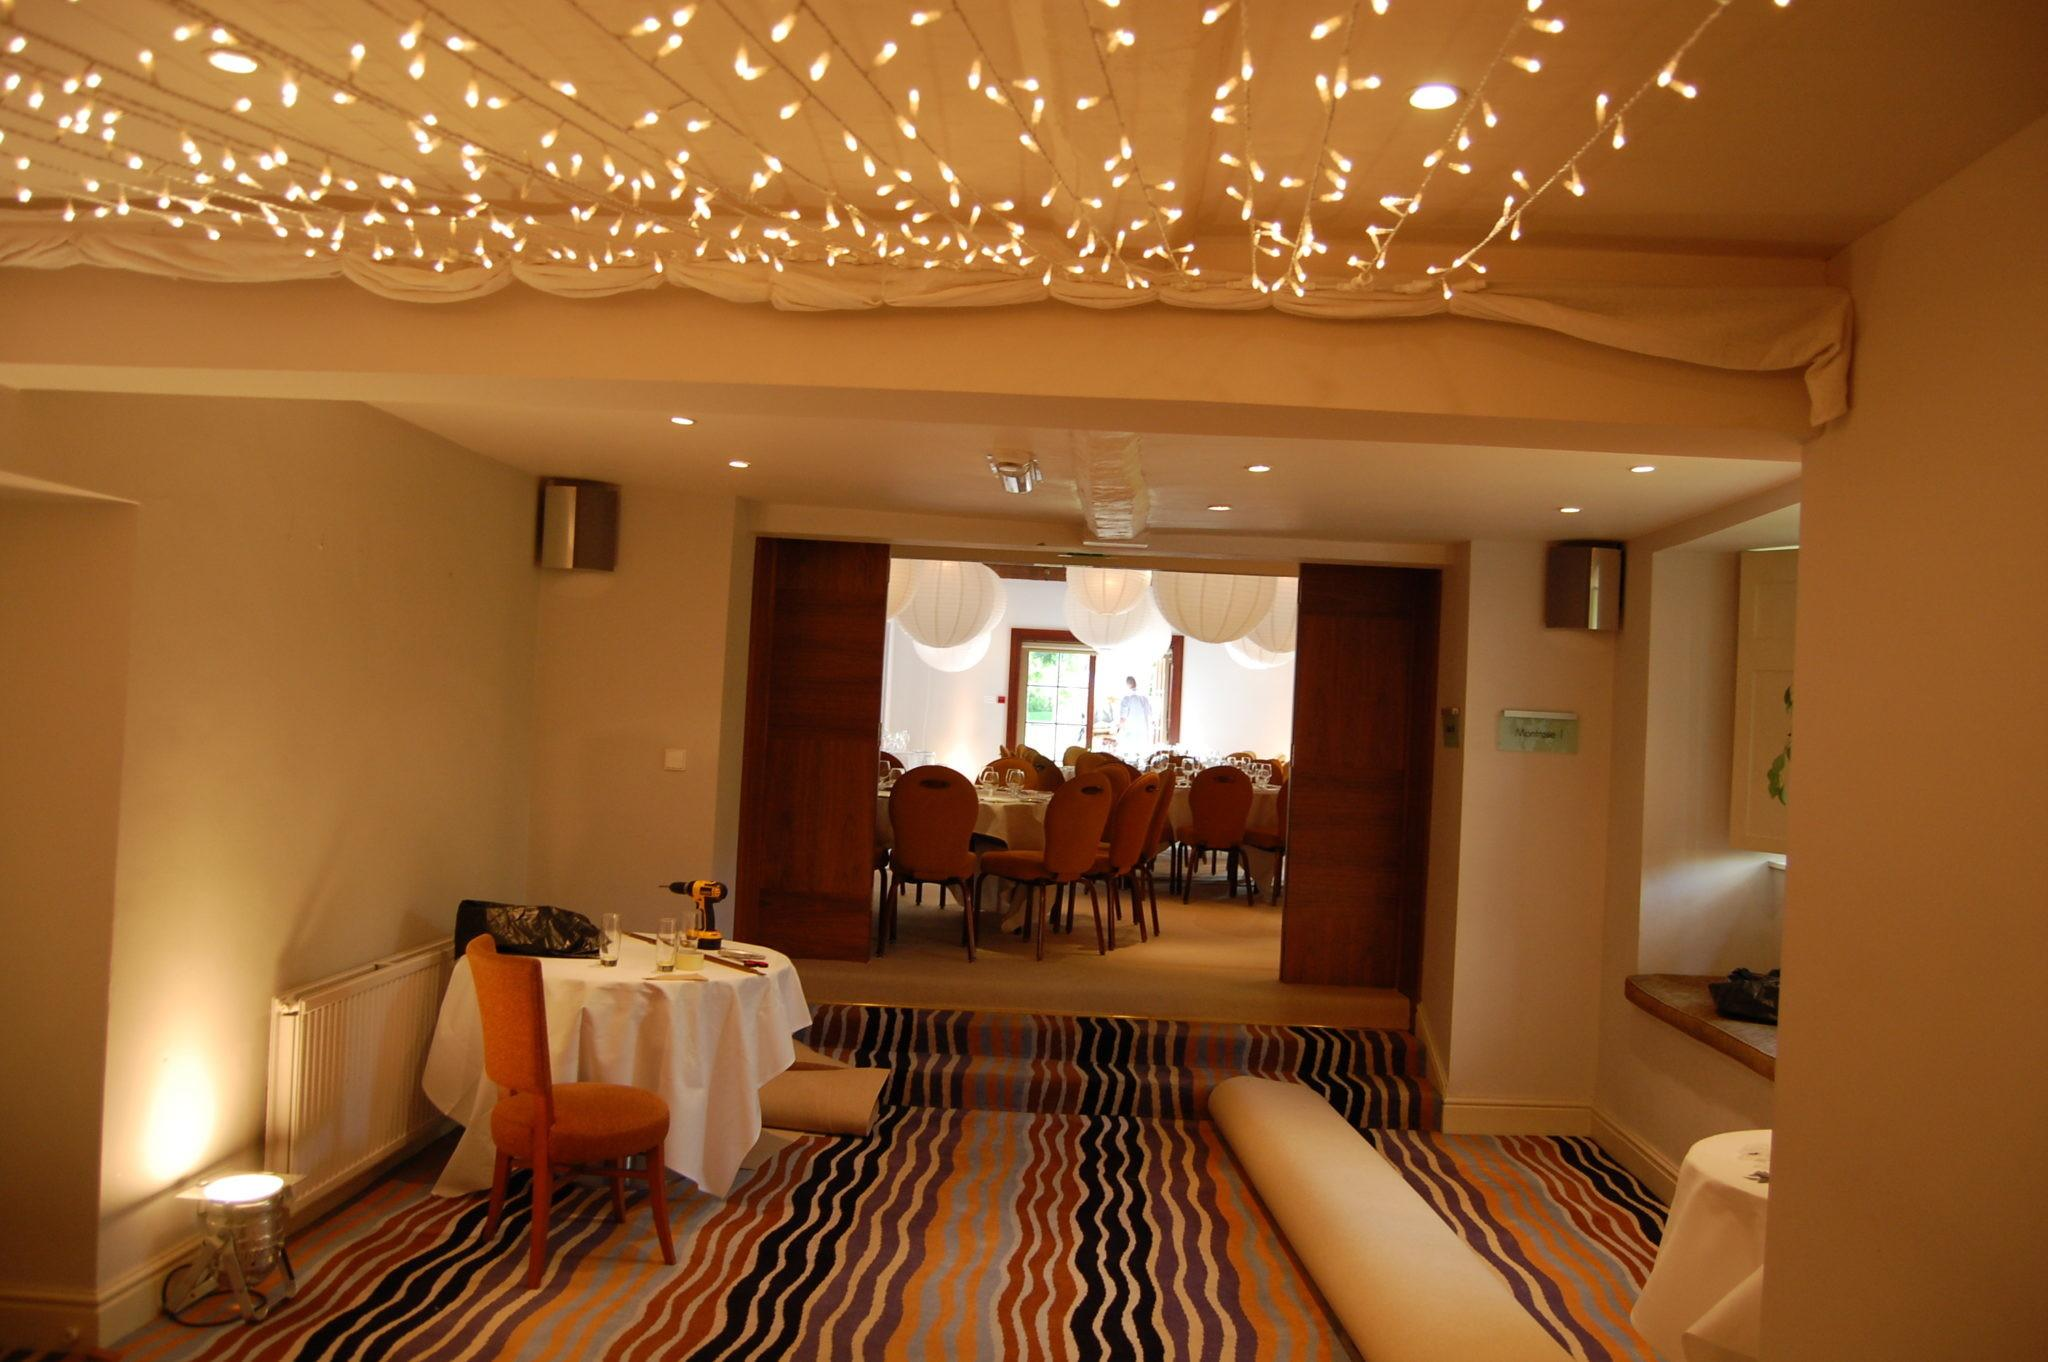 Fairy Light Fan Canopy Lights Room Ideas All